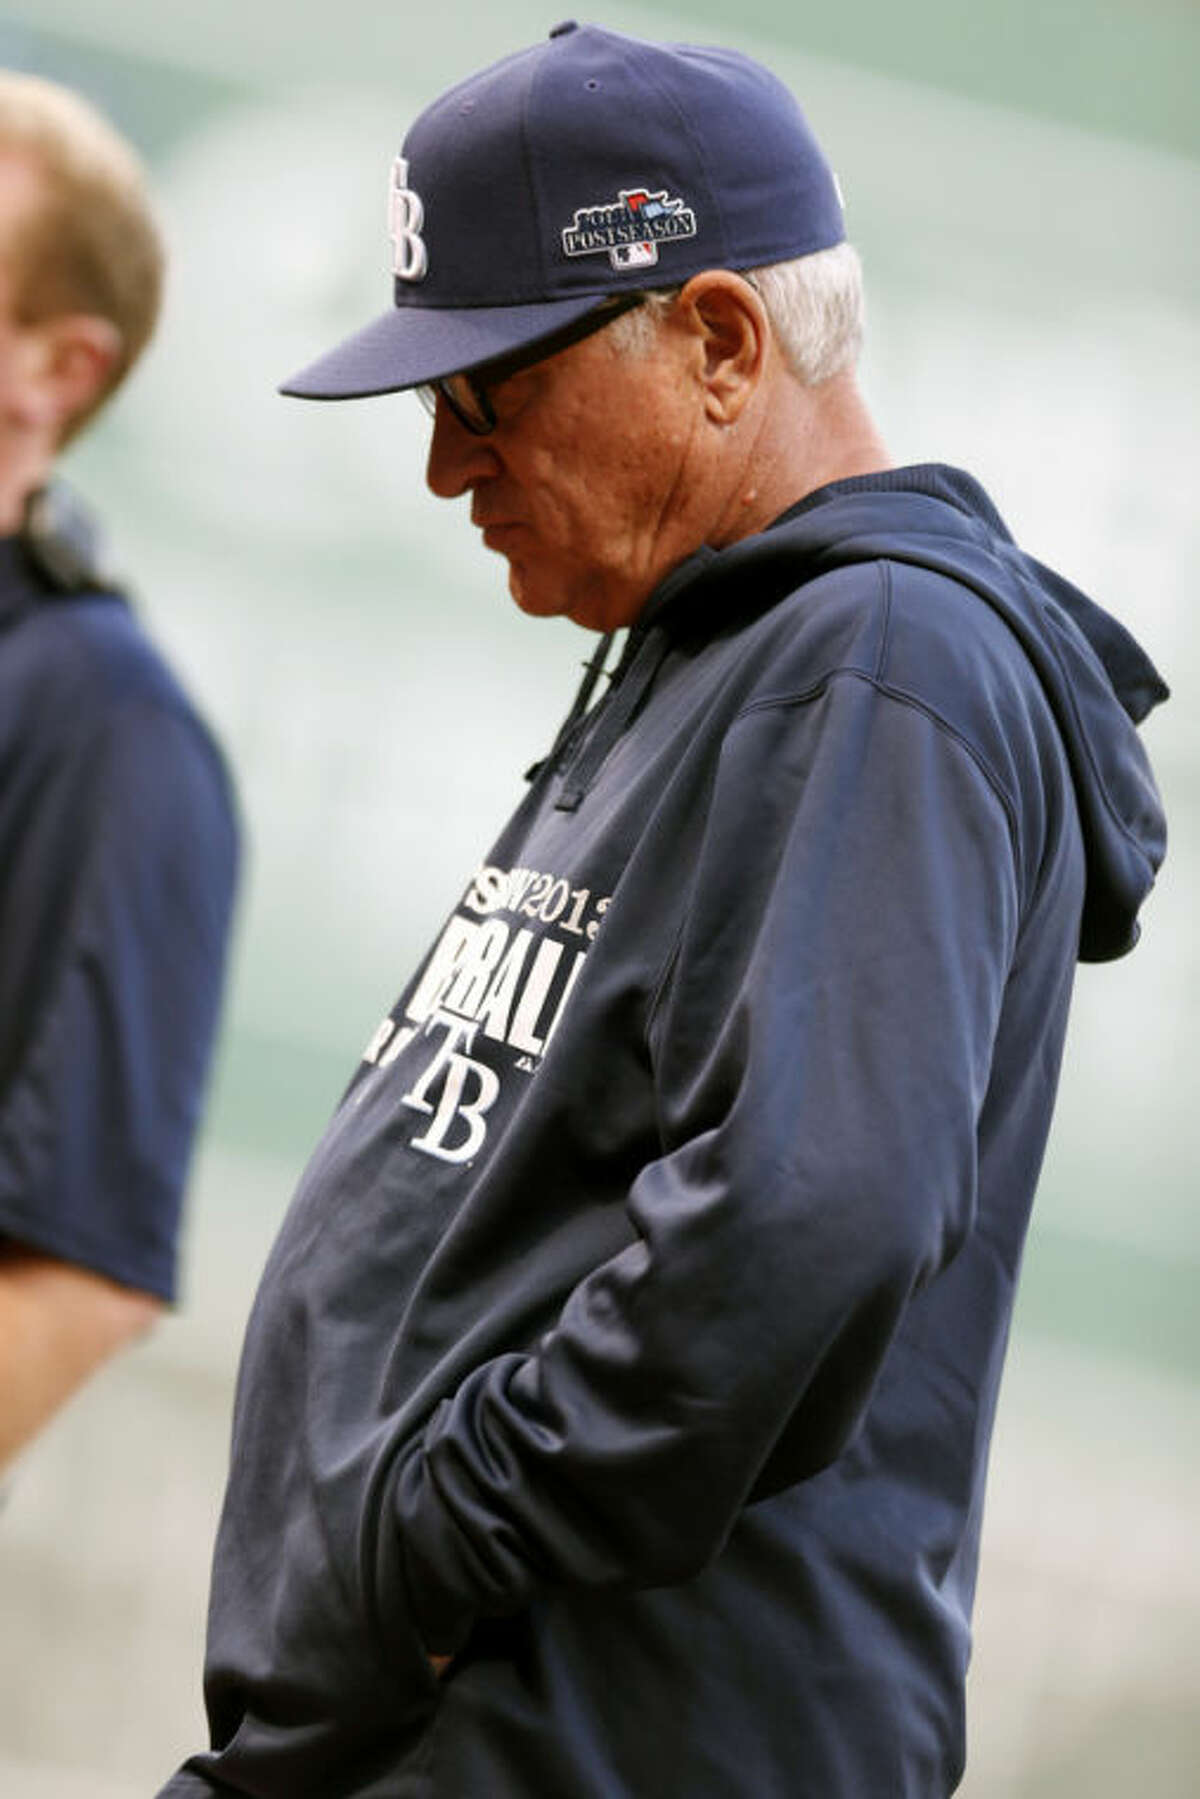 Tampa Bay Rays manager Joe Maddon walks to the dugout after making a pitching change in the sixth inning in Game 1 of baseball's American League division series against the Boston Red Sox, Friday, Oct. 4, 2013, in Boston. (AP Photo/Michael Dwyer)